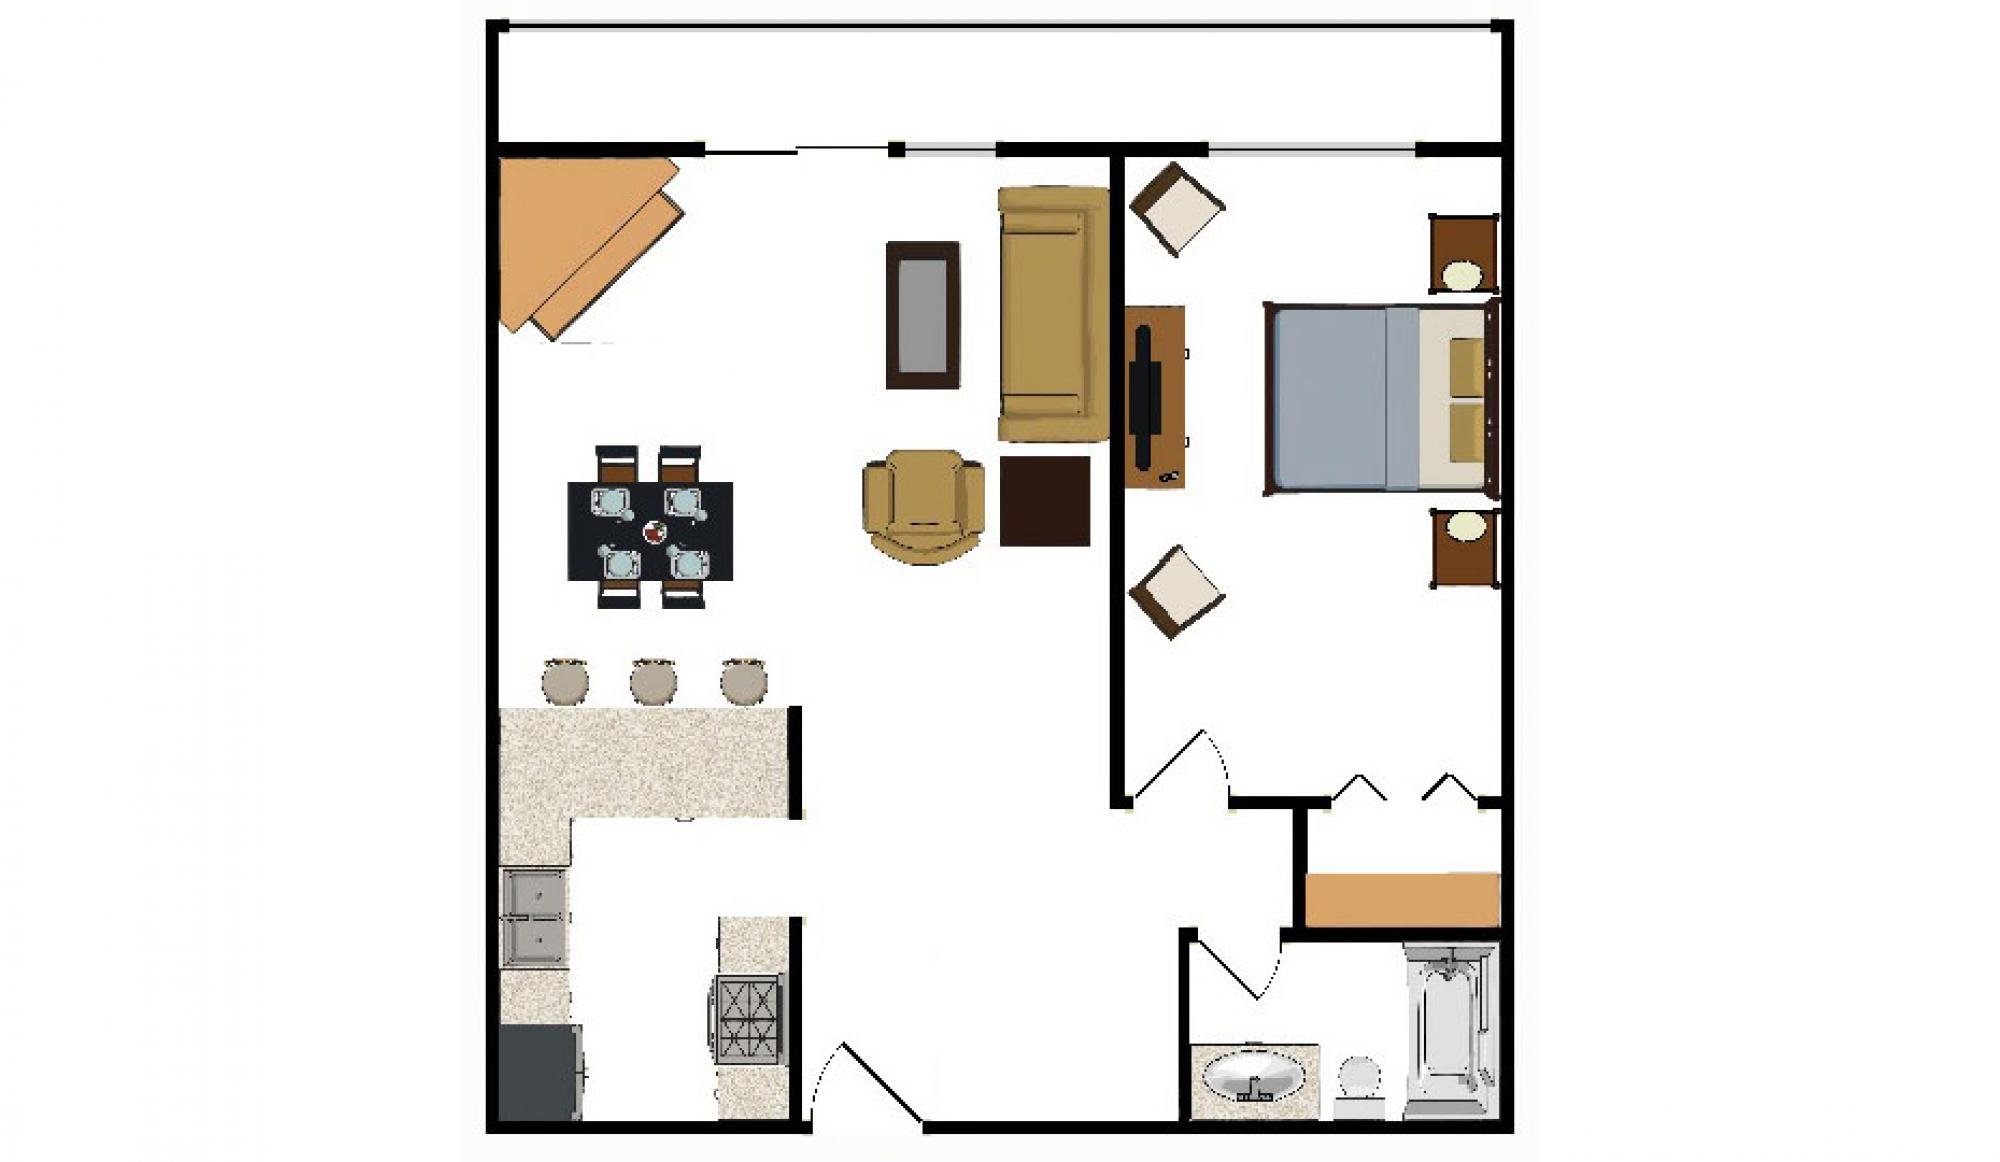 One Bedroom Condo Floor Plan at Beaver Run Resort in Breckenridge